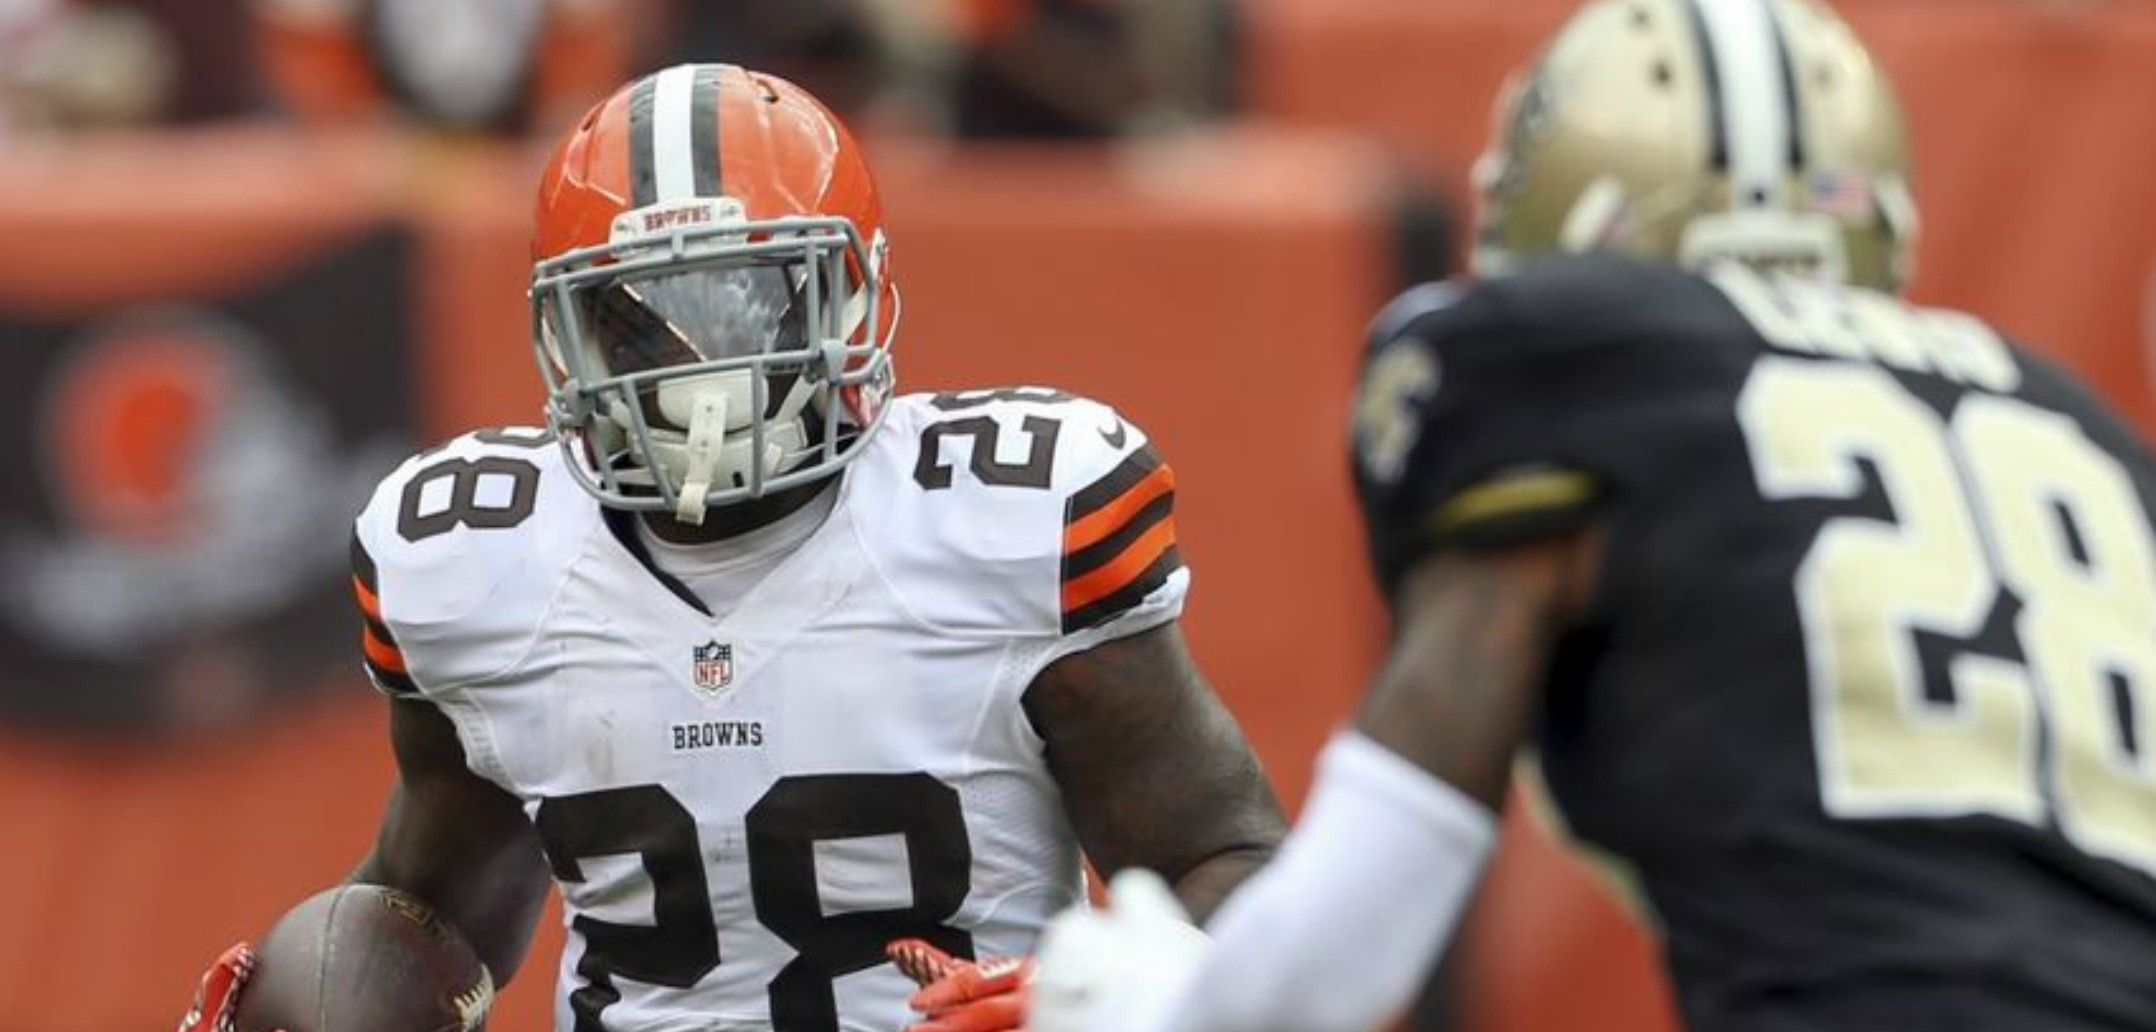 Courtesy of USA Today: Terrance West and the Browns running game is dominating right now.